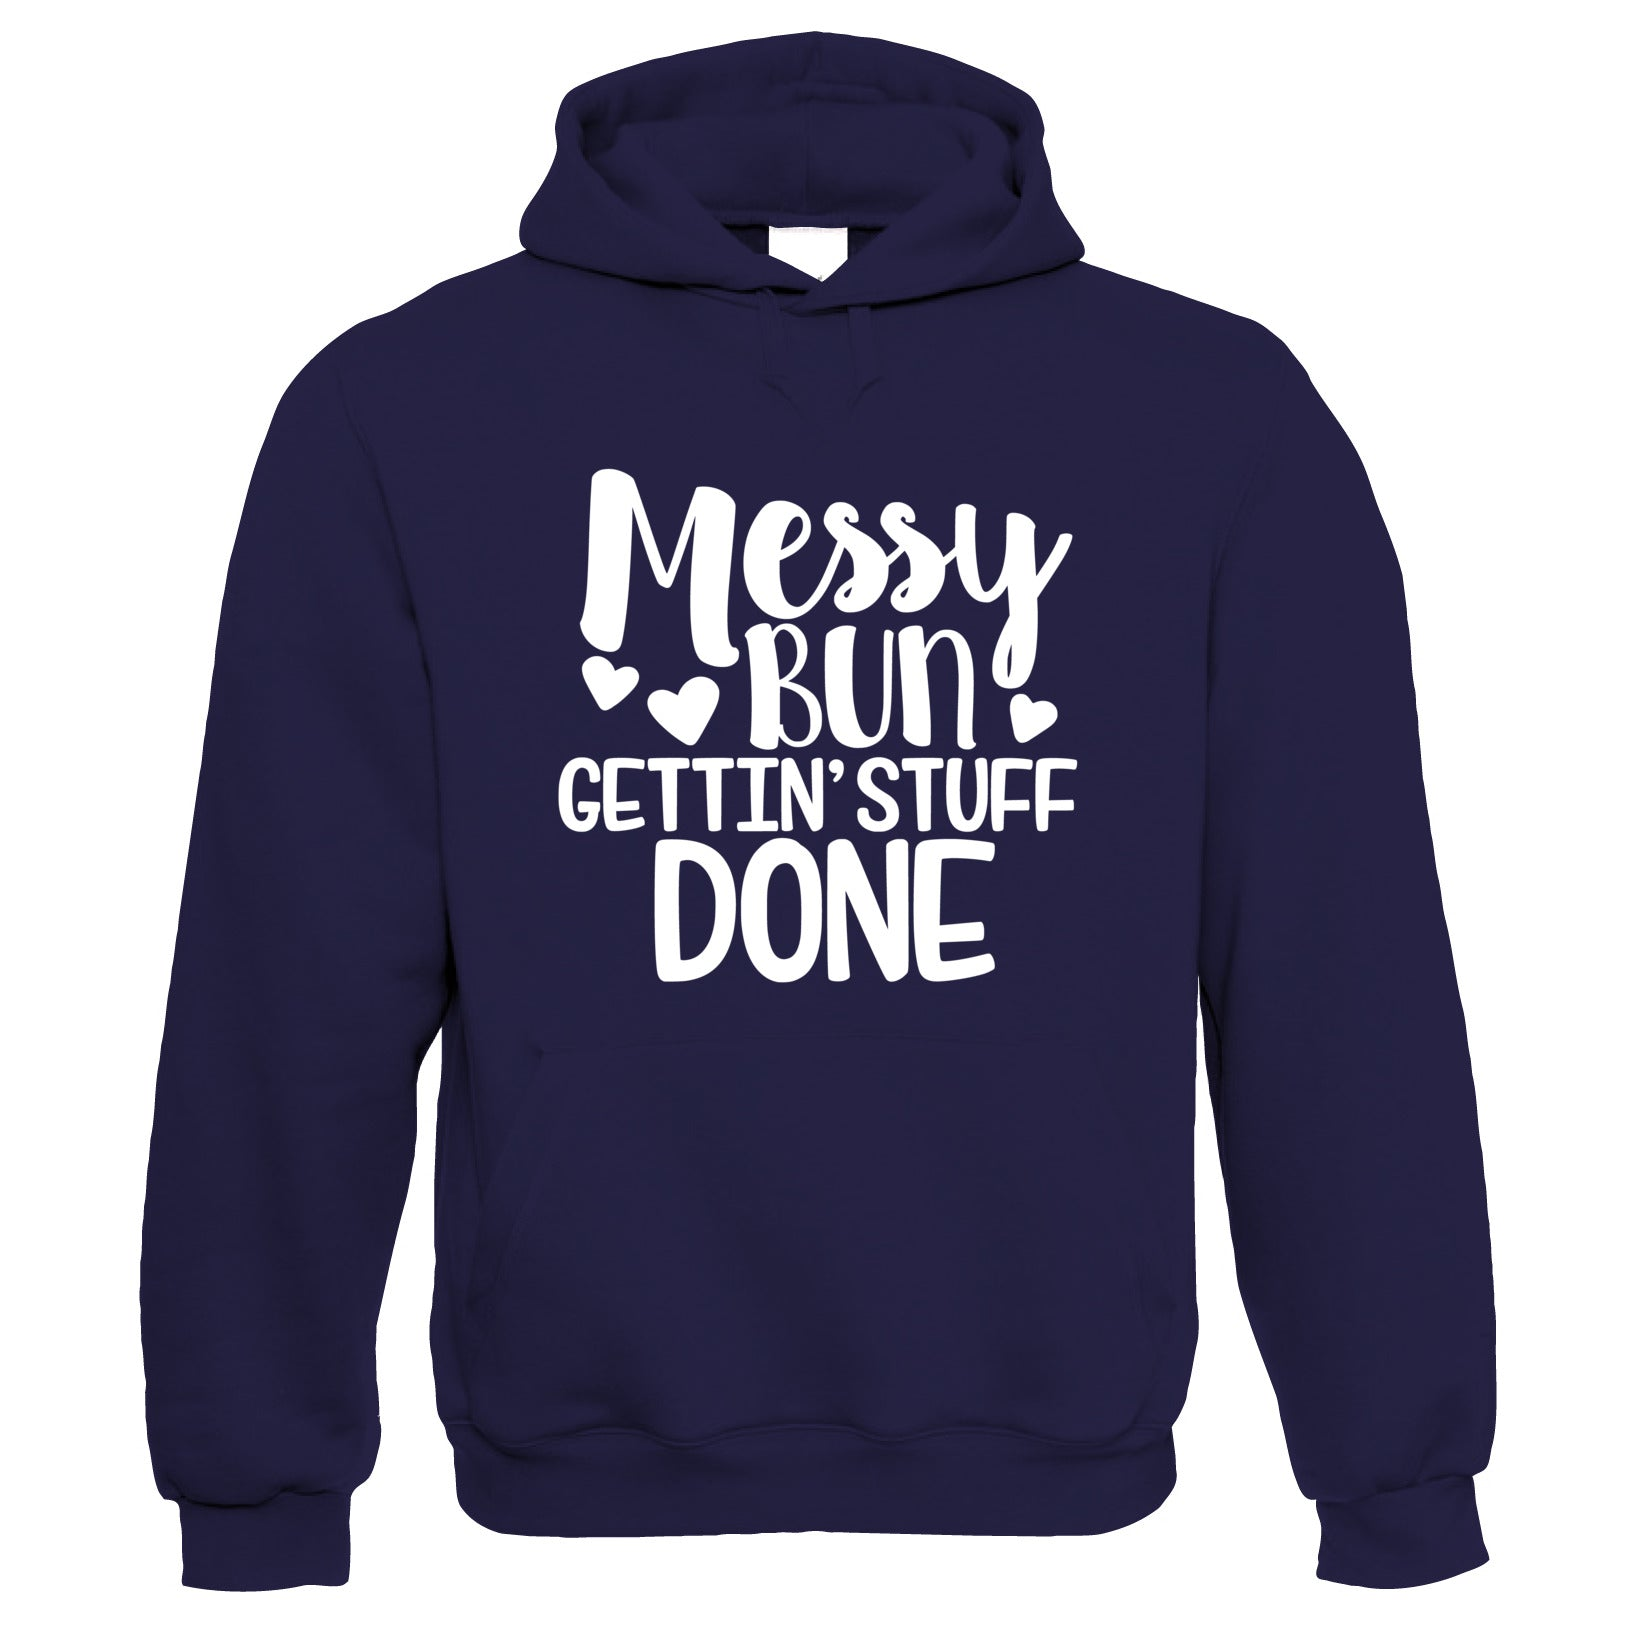 Messy Bun Gettin' Stuff Done, Womens Funny Hoodie | Funny Novelty Perfect Gift Present For Mum Mom Mama Ladies | Mothers Day Birthday Christmas from Daughter Son Grandson